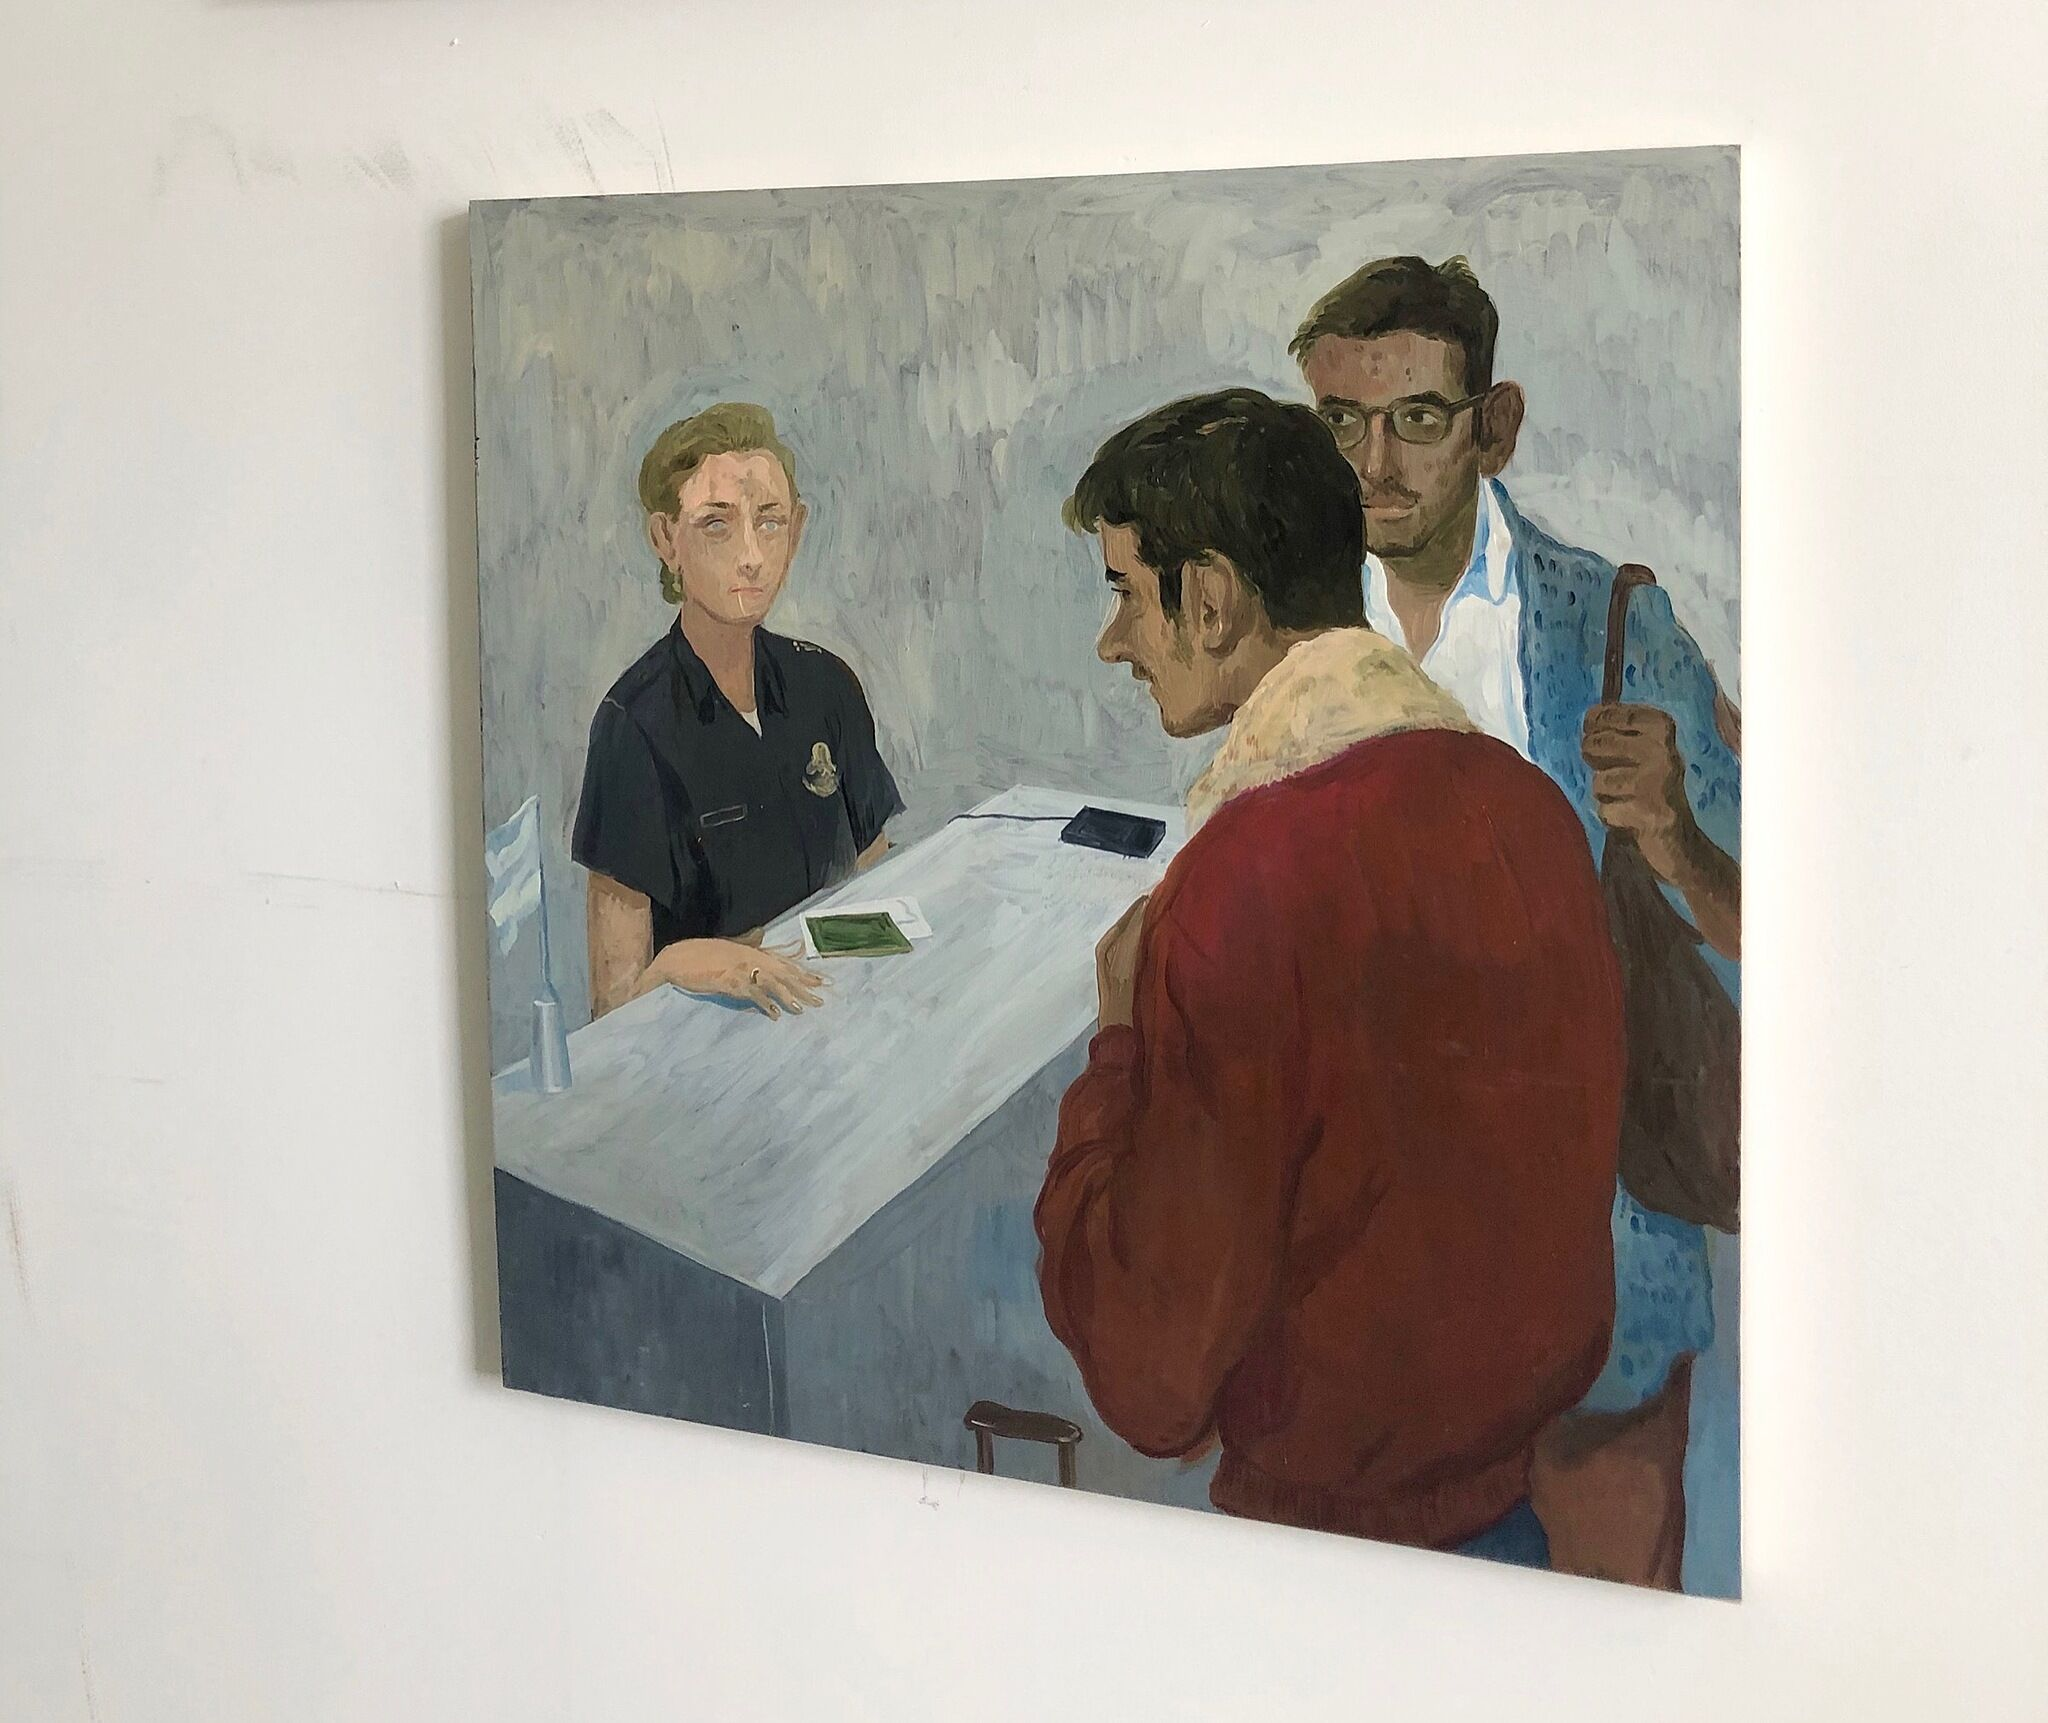 A painting on a wall depicting three individuals around a table charging phones.